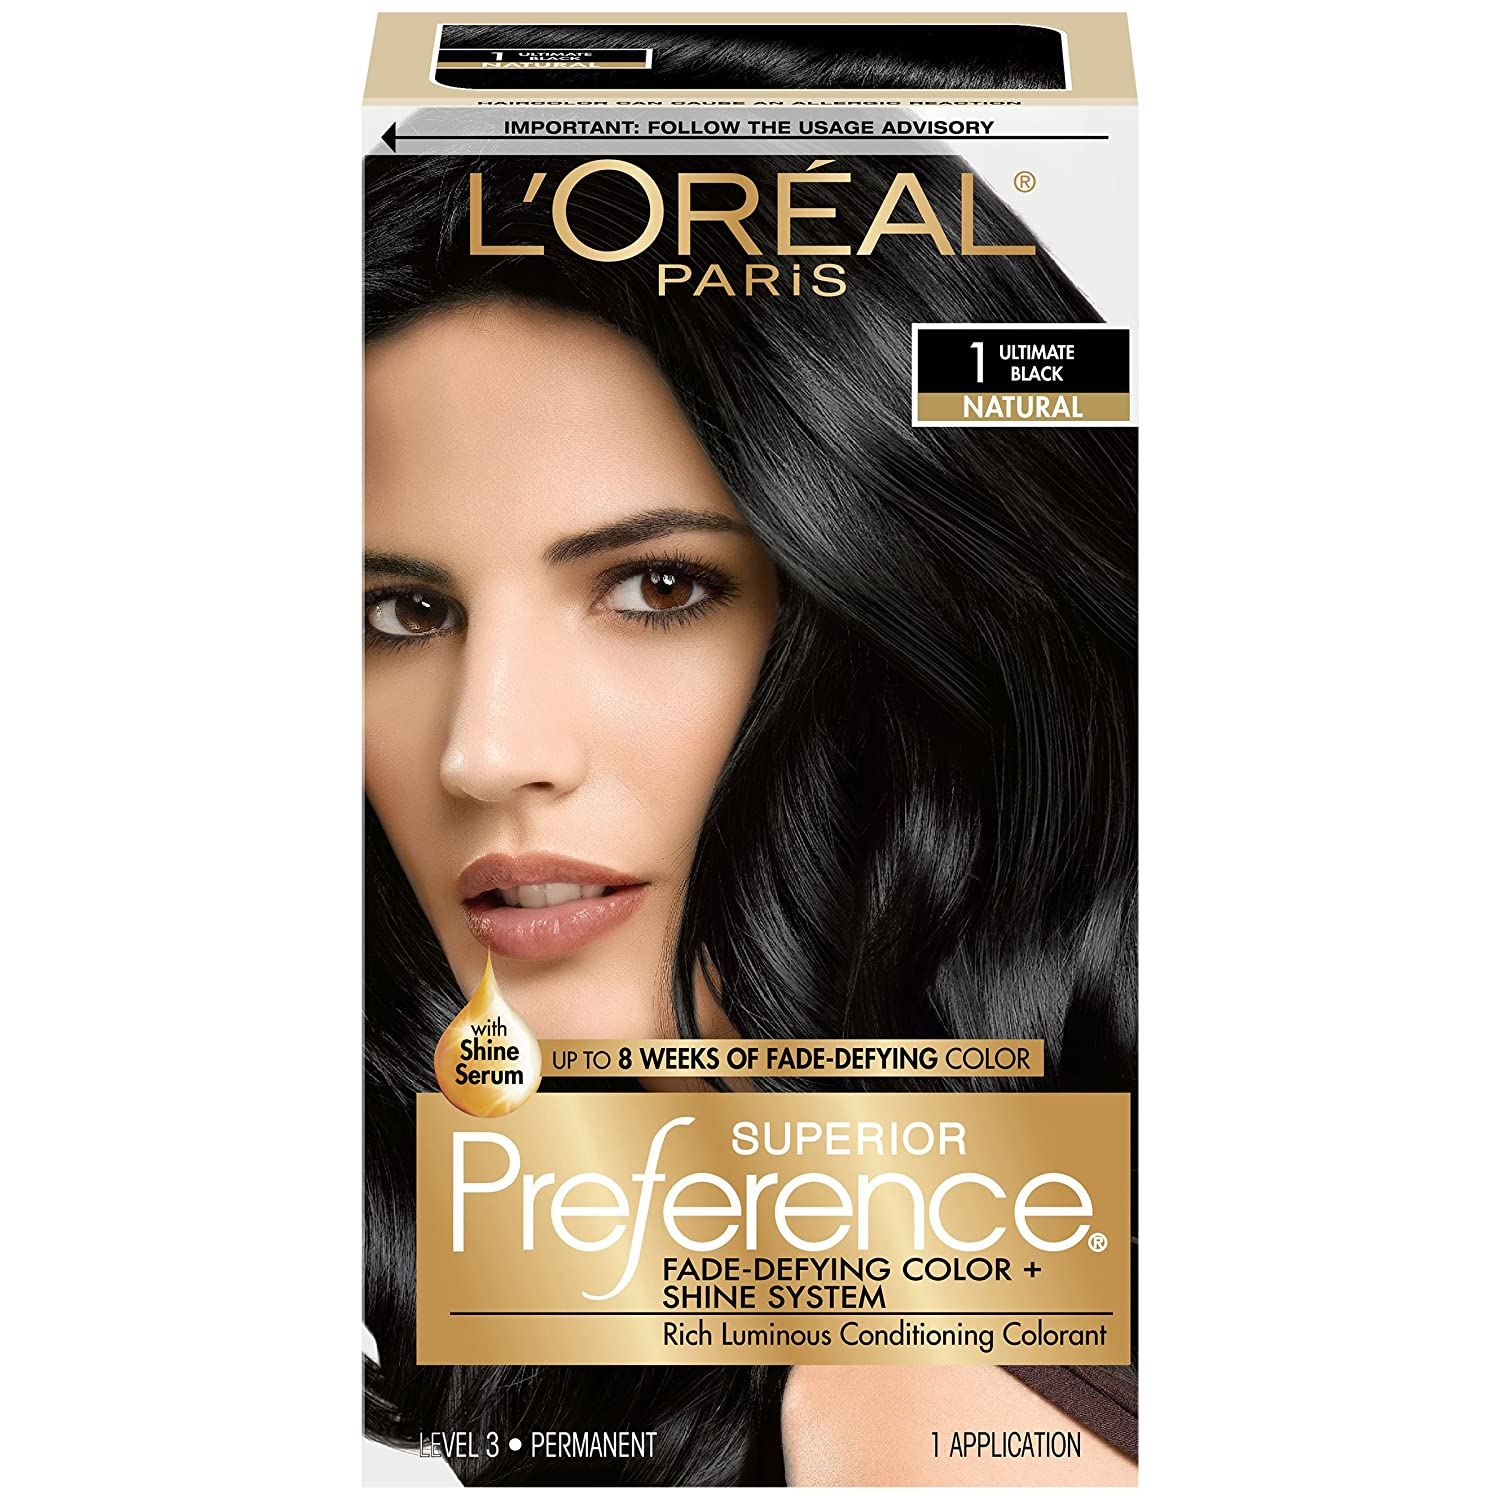 Loral Paris Superior Preference Permanent Hair Color 10 Ultimate